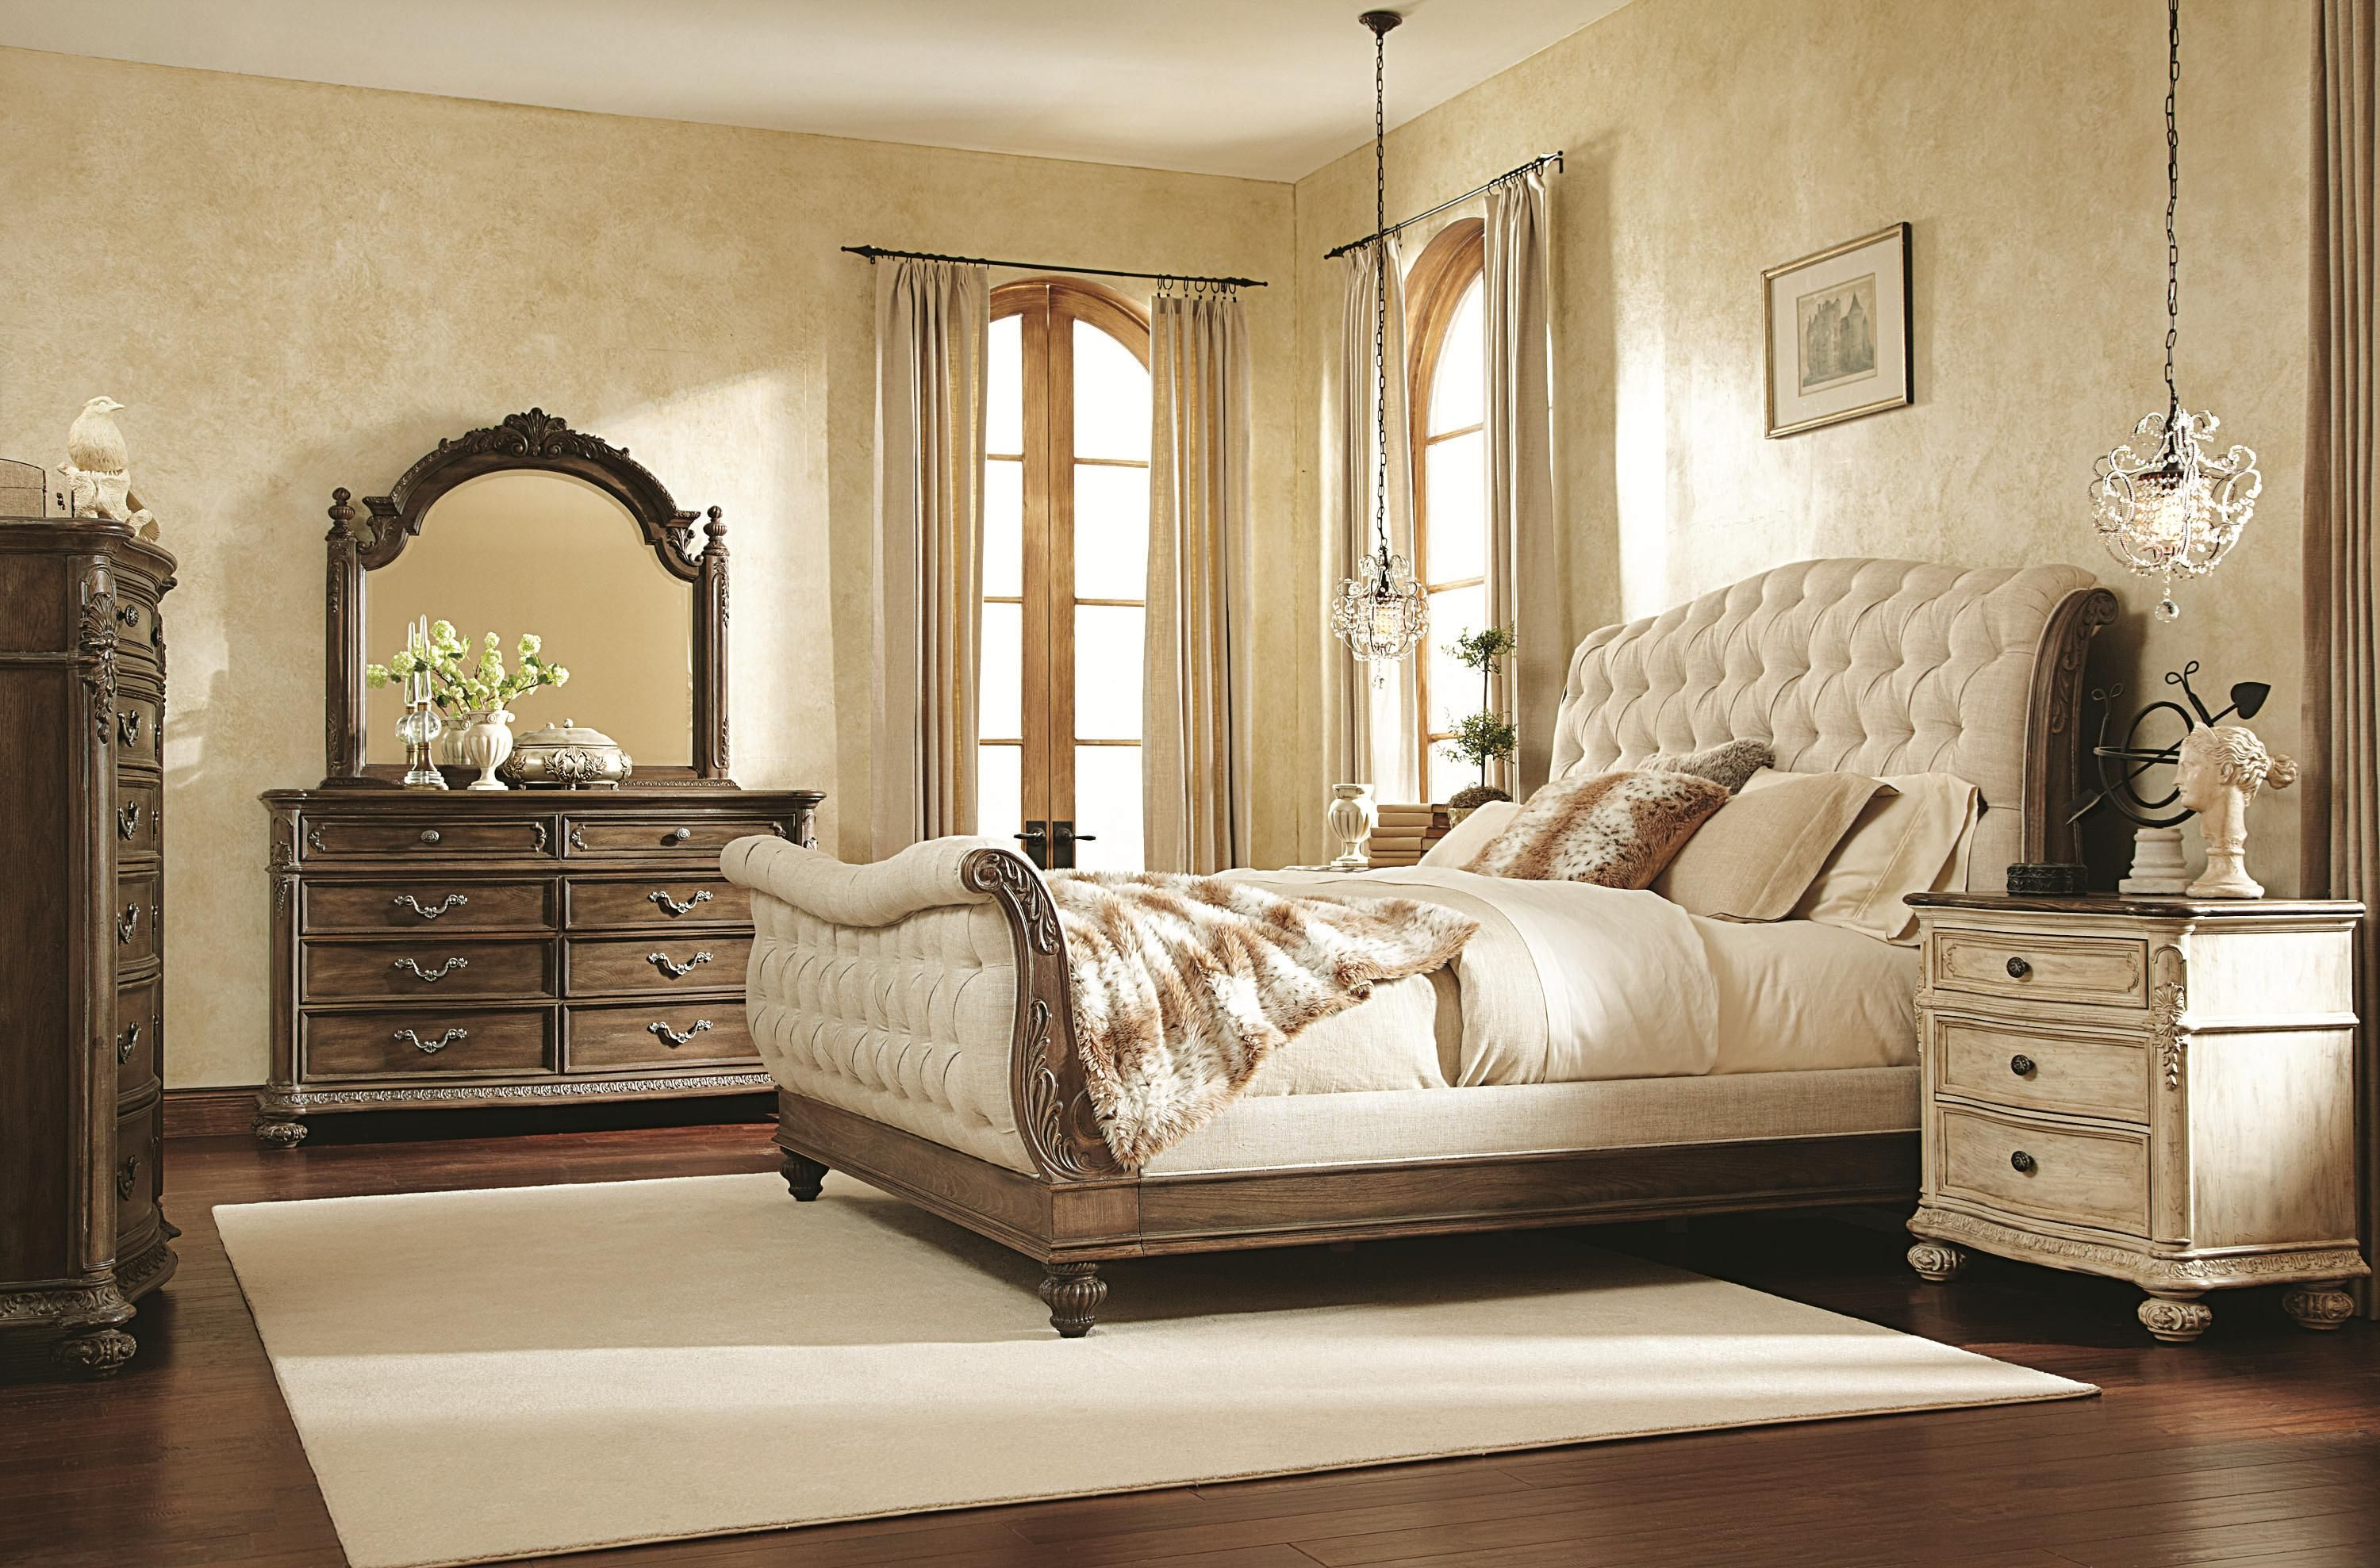 Upholstered Sleigh Beds Queen | jessica mcclintock home the ...